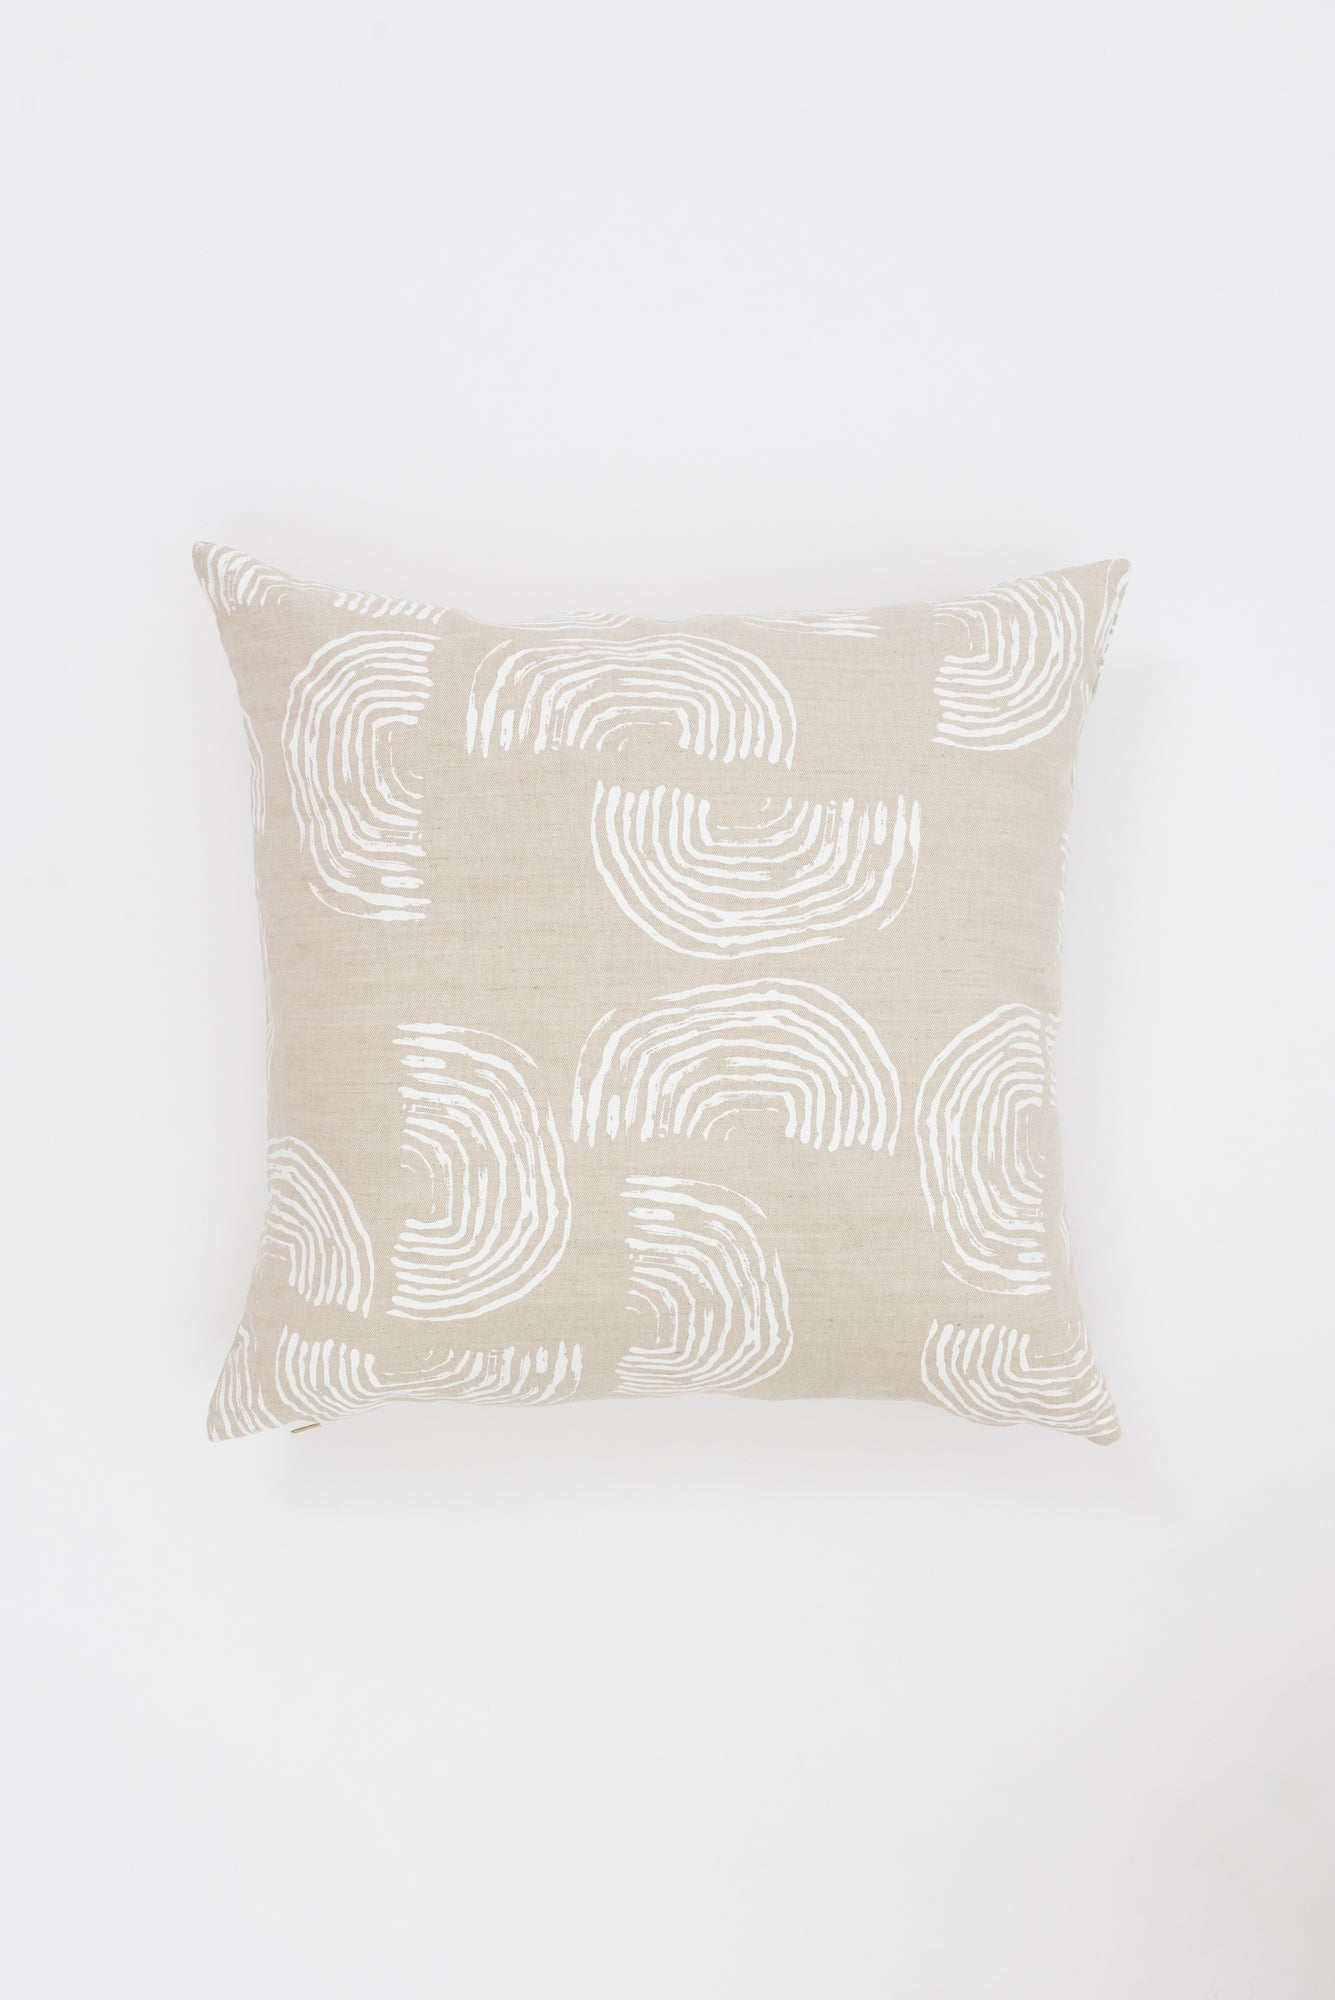 Squiggles Pillow